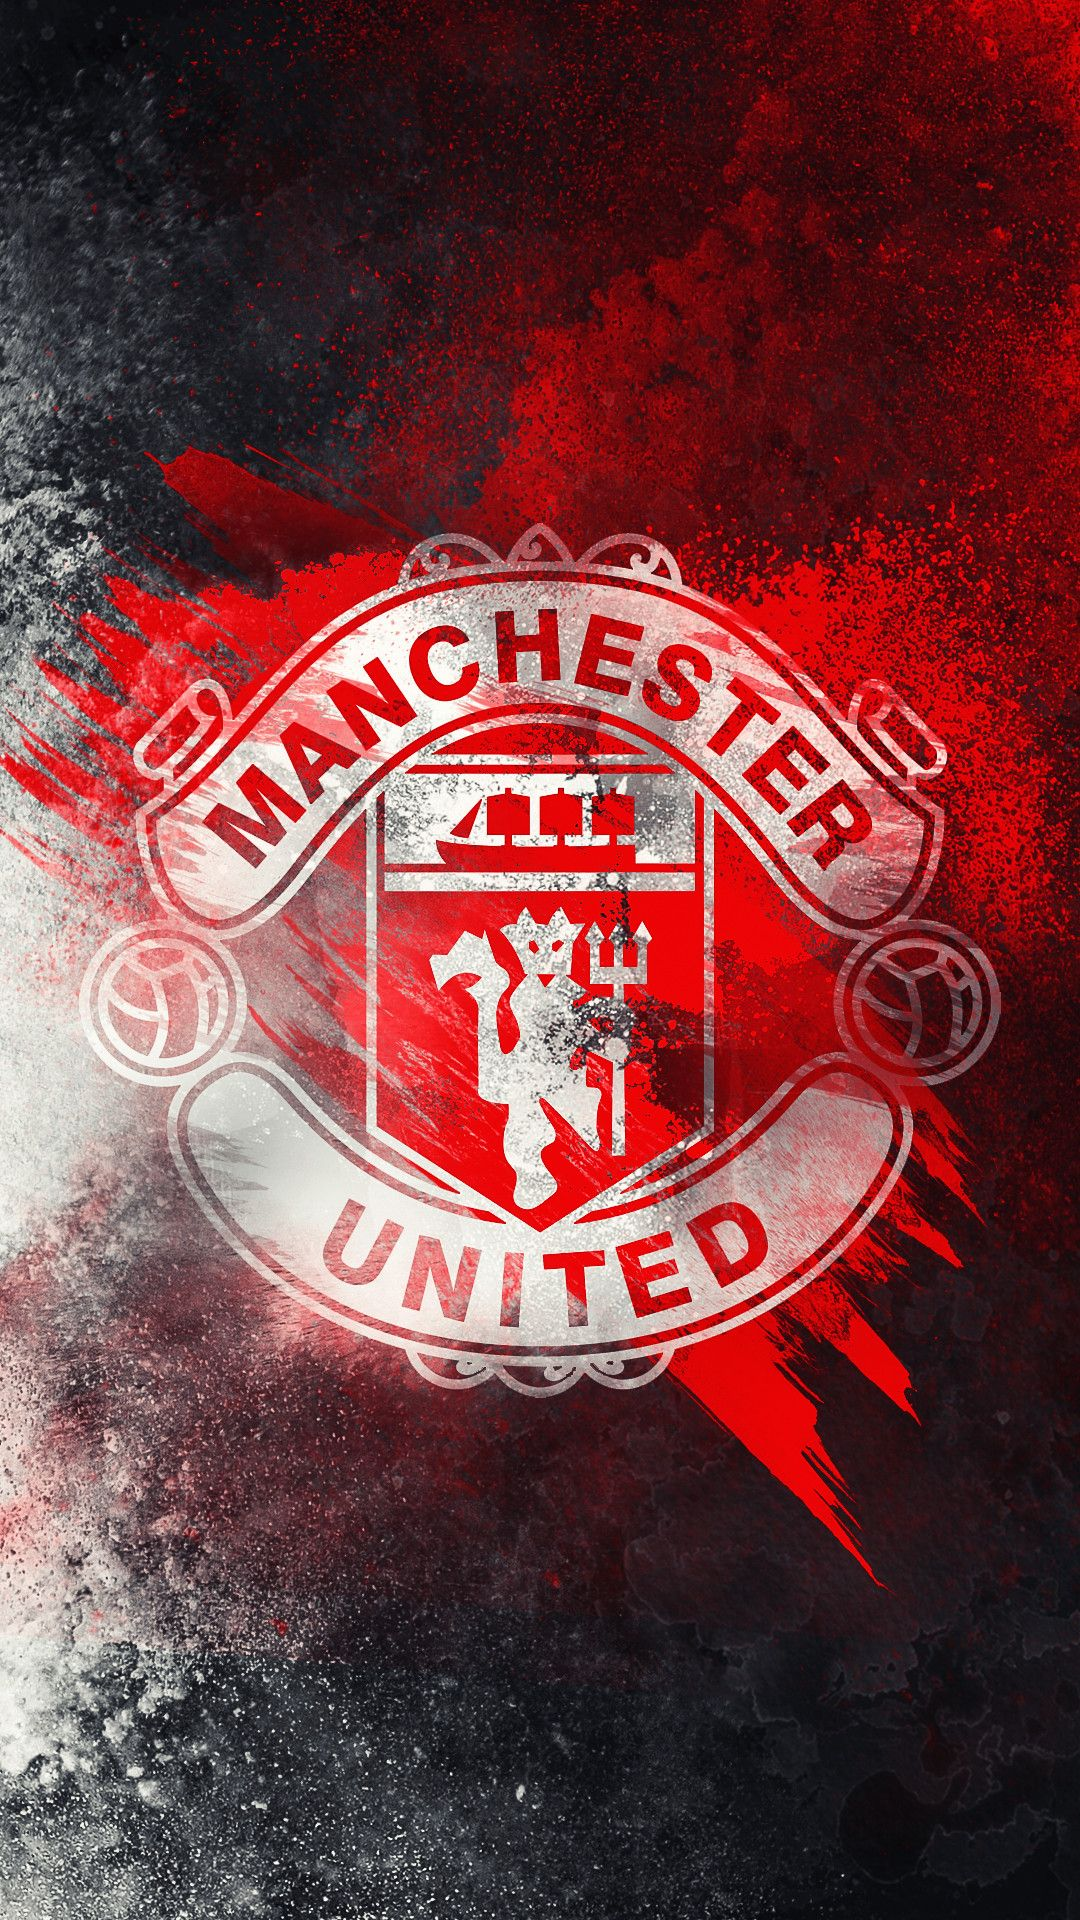 Manchester United Hd Logo Wallpaper By Kerimov23 Manchester United Wallpapers Iphone Manchester United Logo Manchester United Team